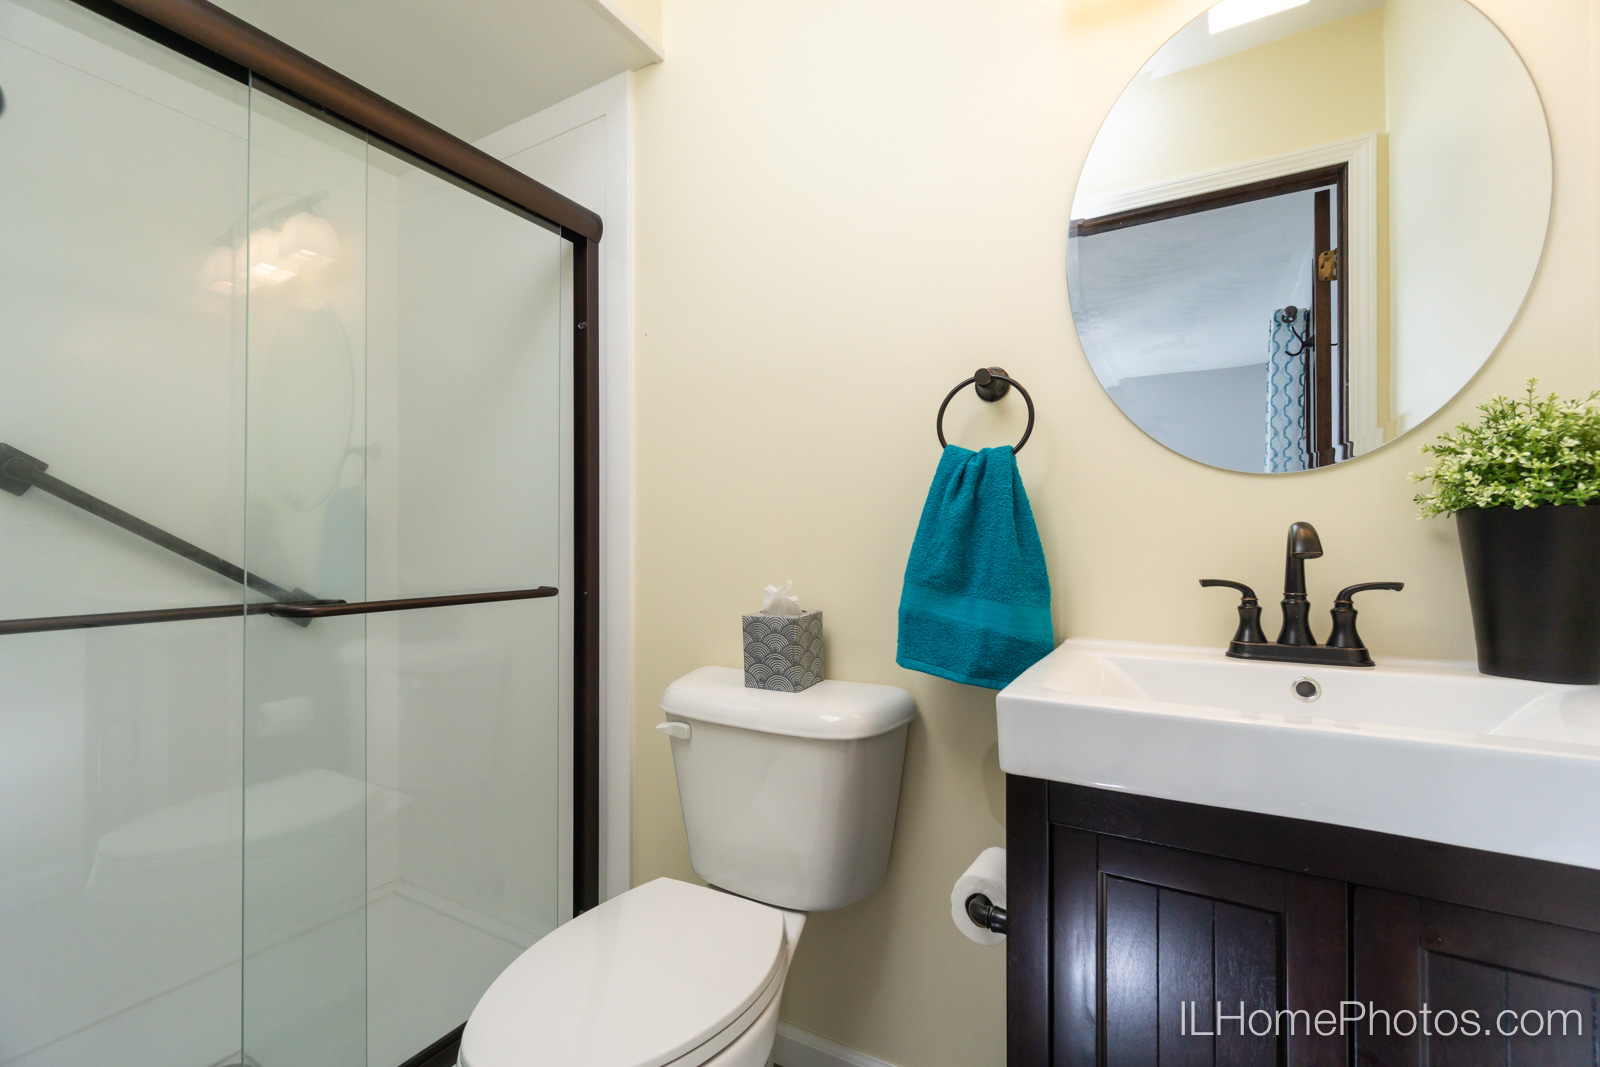 Interior master bathroom photograph for real estate in Sherman, IL :: Illinois Home Photography by Michael Gowin, Lincoln, IL